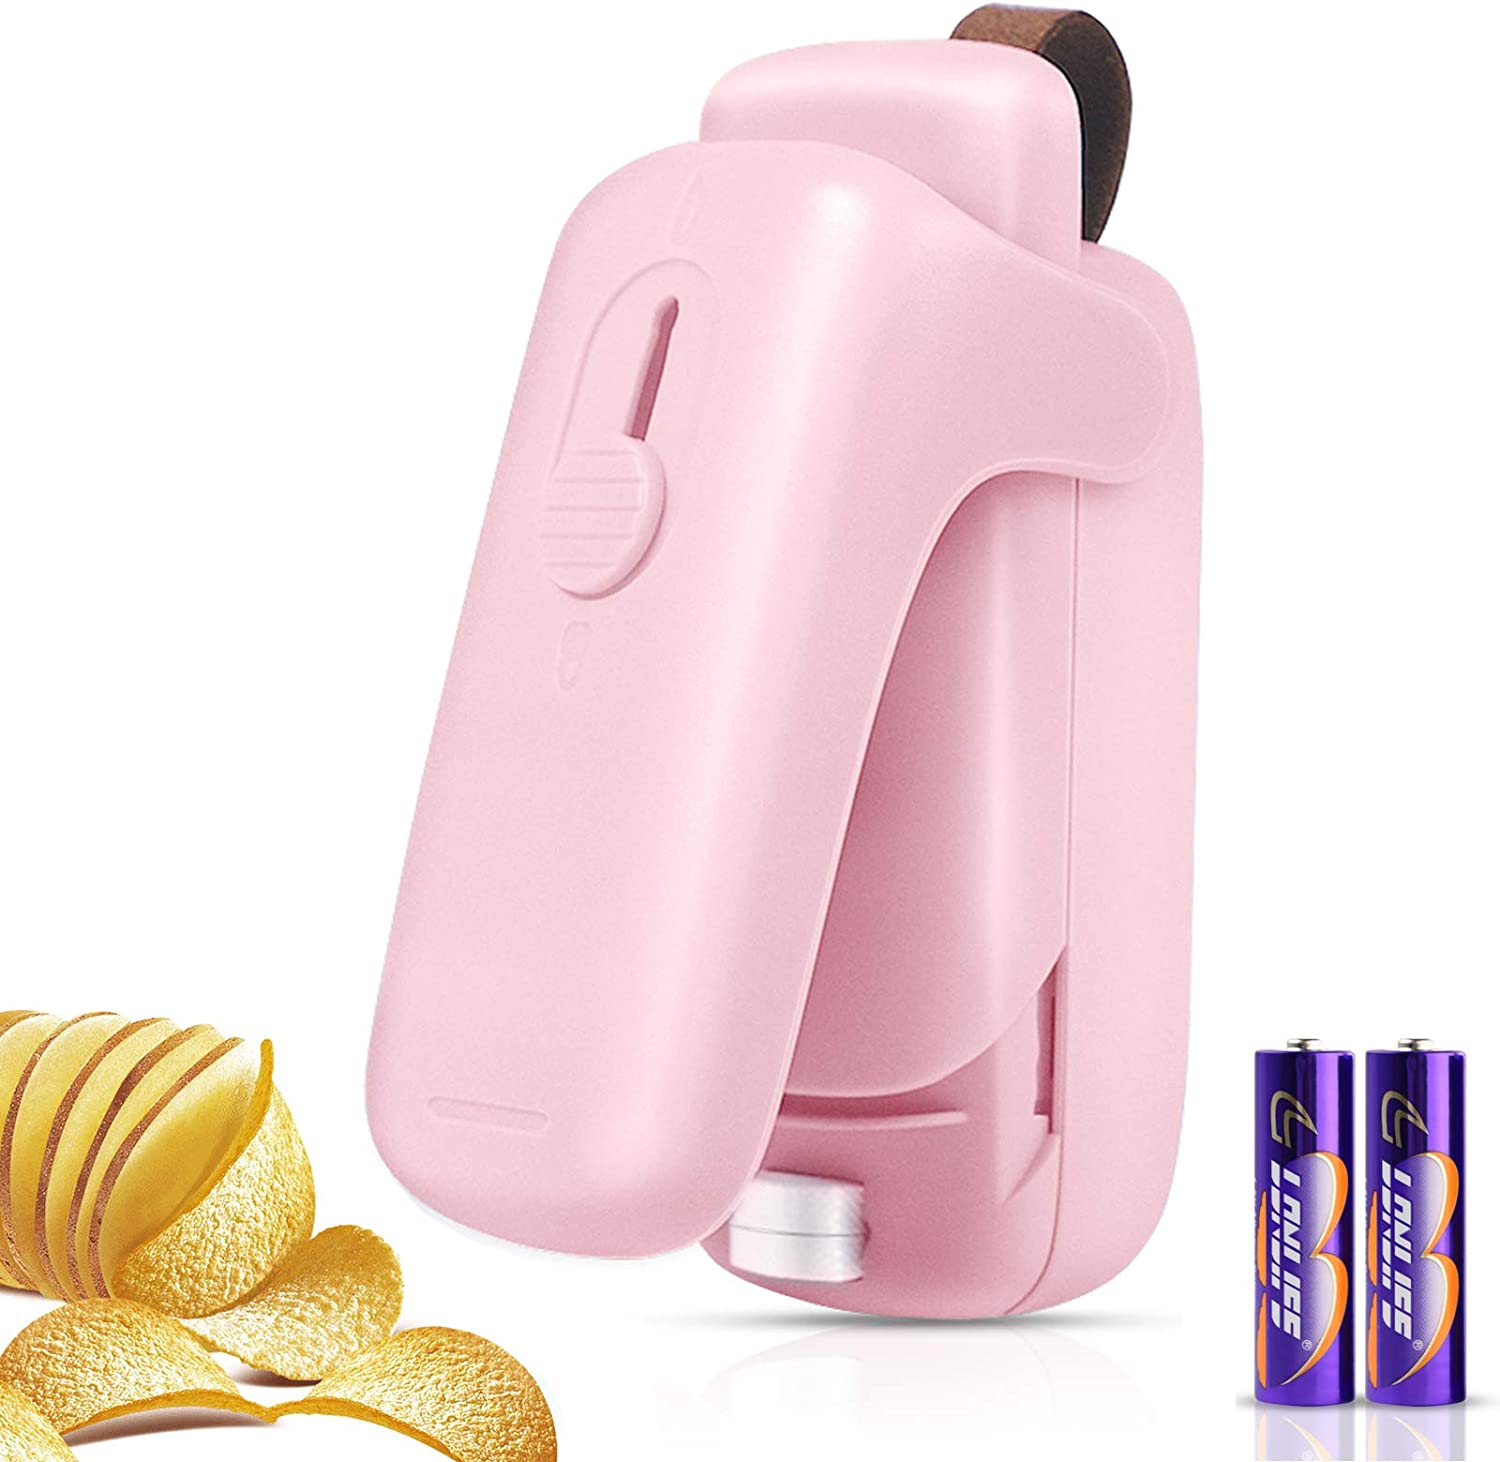 LORDSON Mini Bag Sealer, Handheld Portable Bag Heat Vacuum Resealer, 2 in 1 Heat Sealer & Cutter Food Saver Machine for Plastic Bags Snack Cookie Candy Chip Bags (Battery Included)